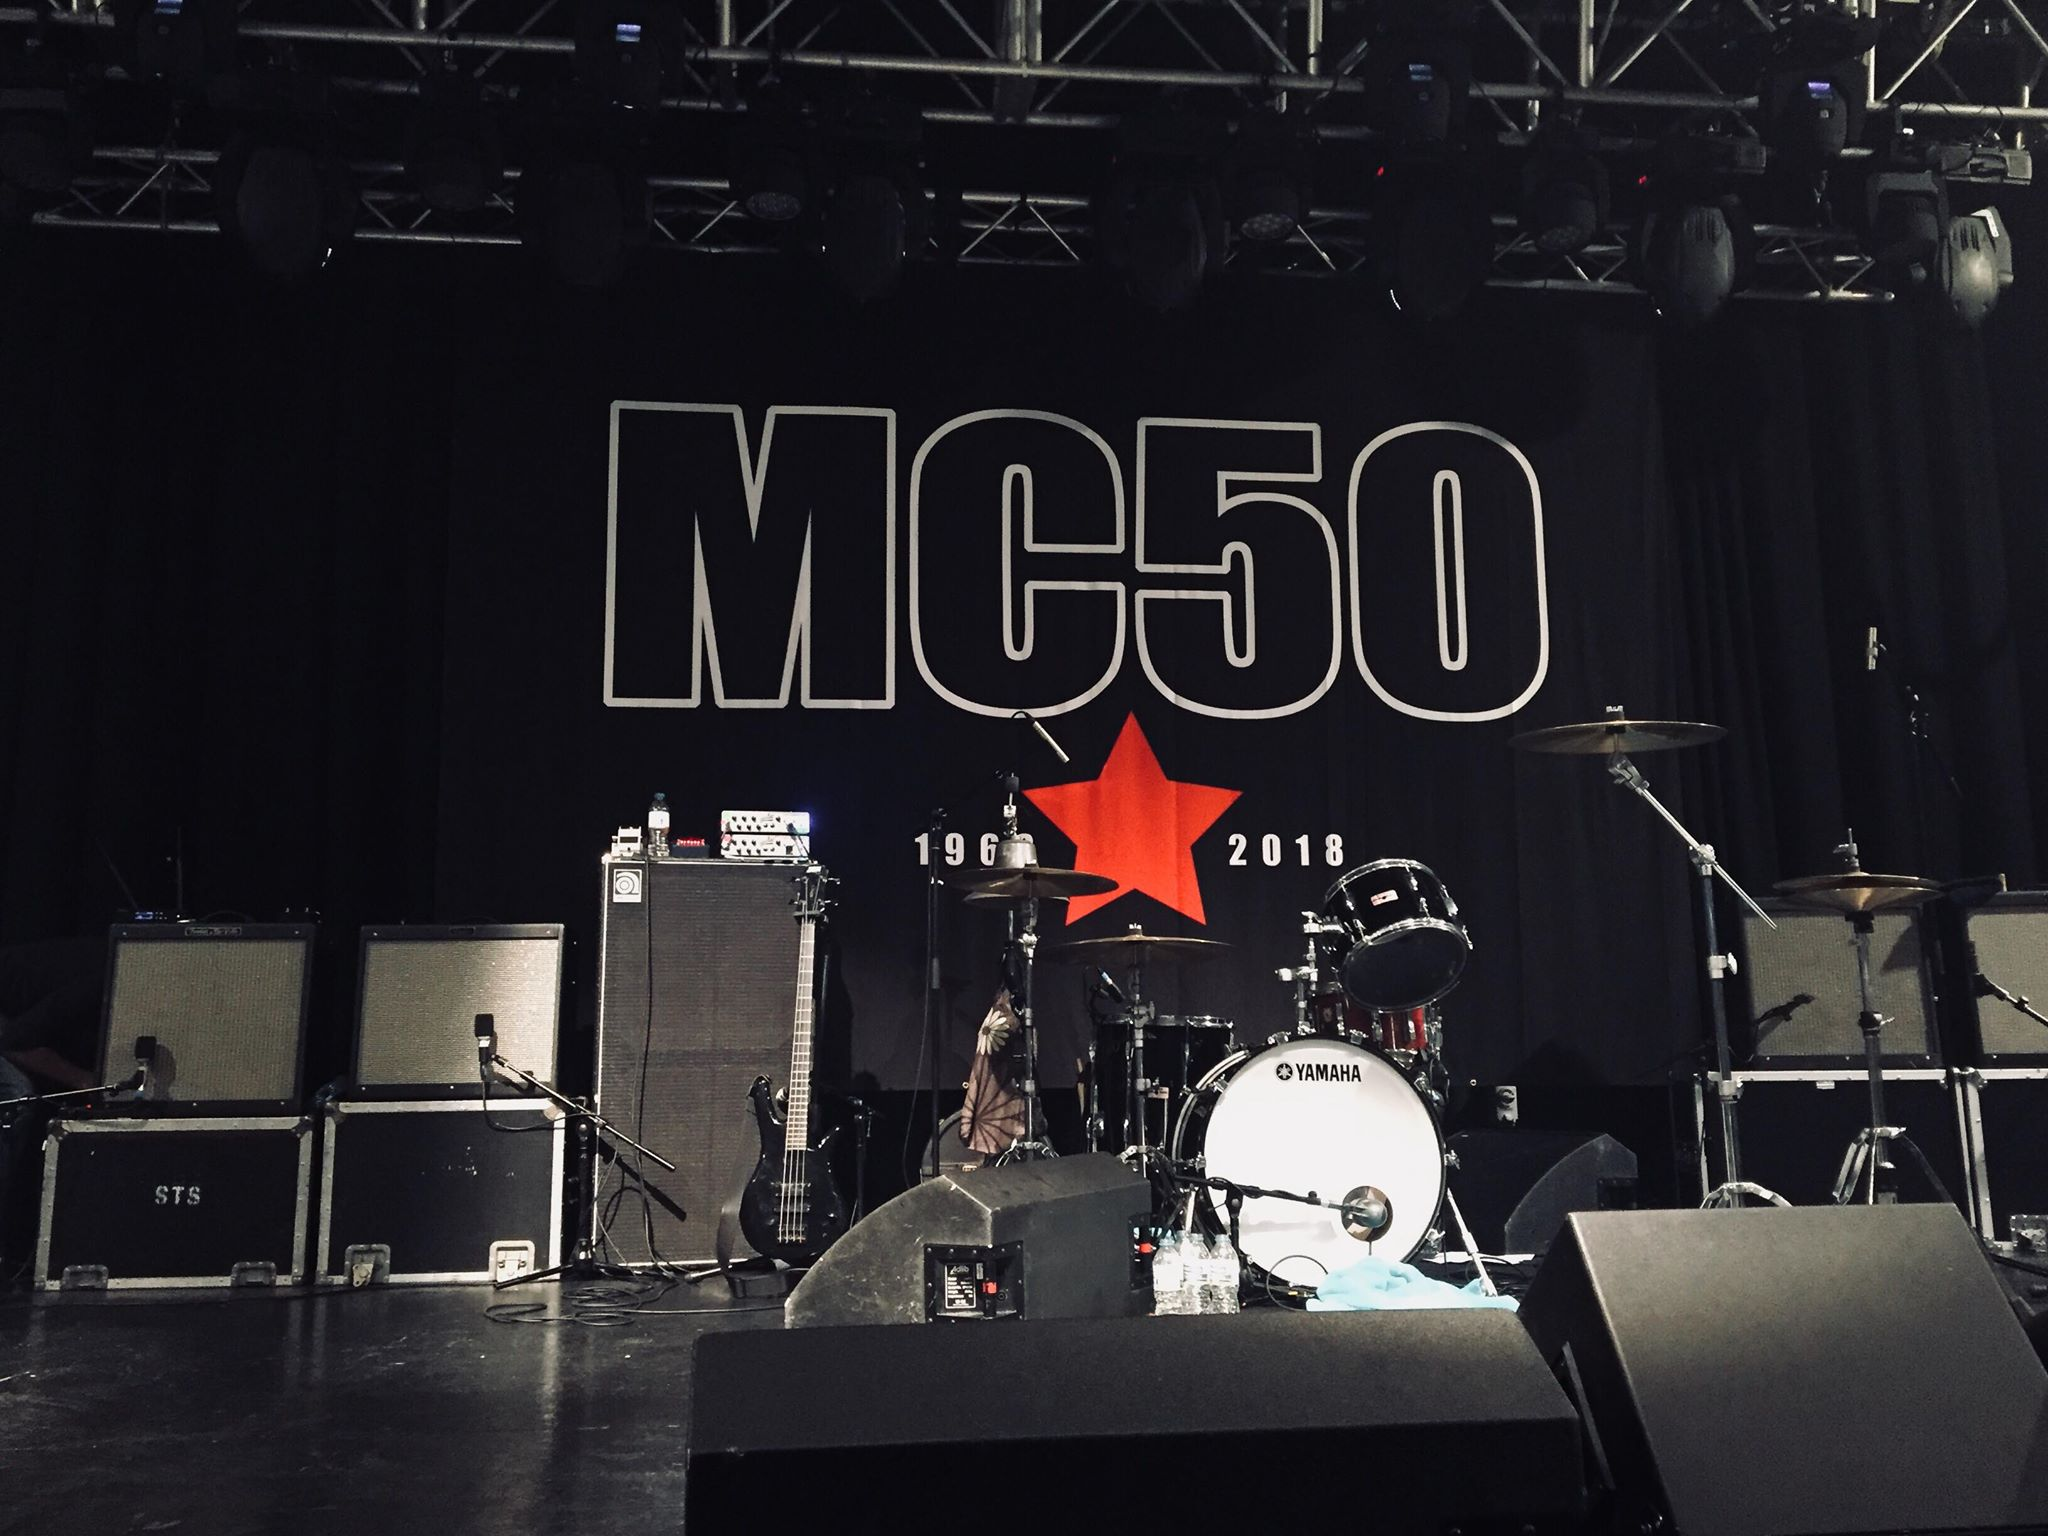 MC50 Backdrop.jpg